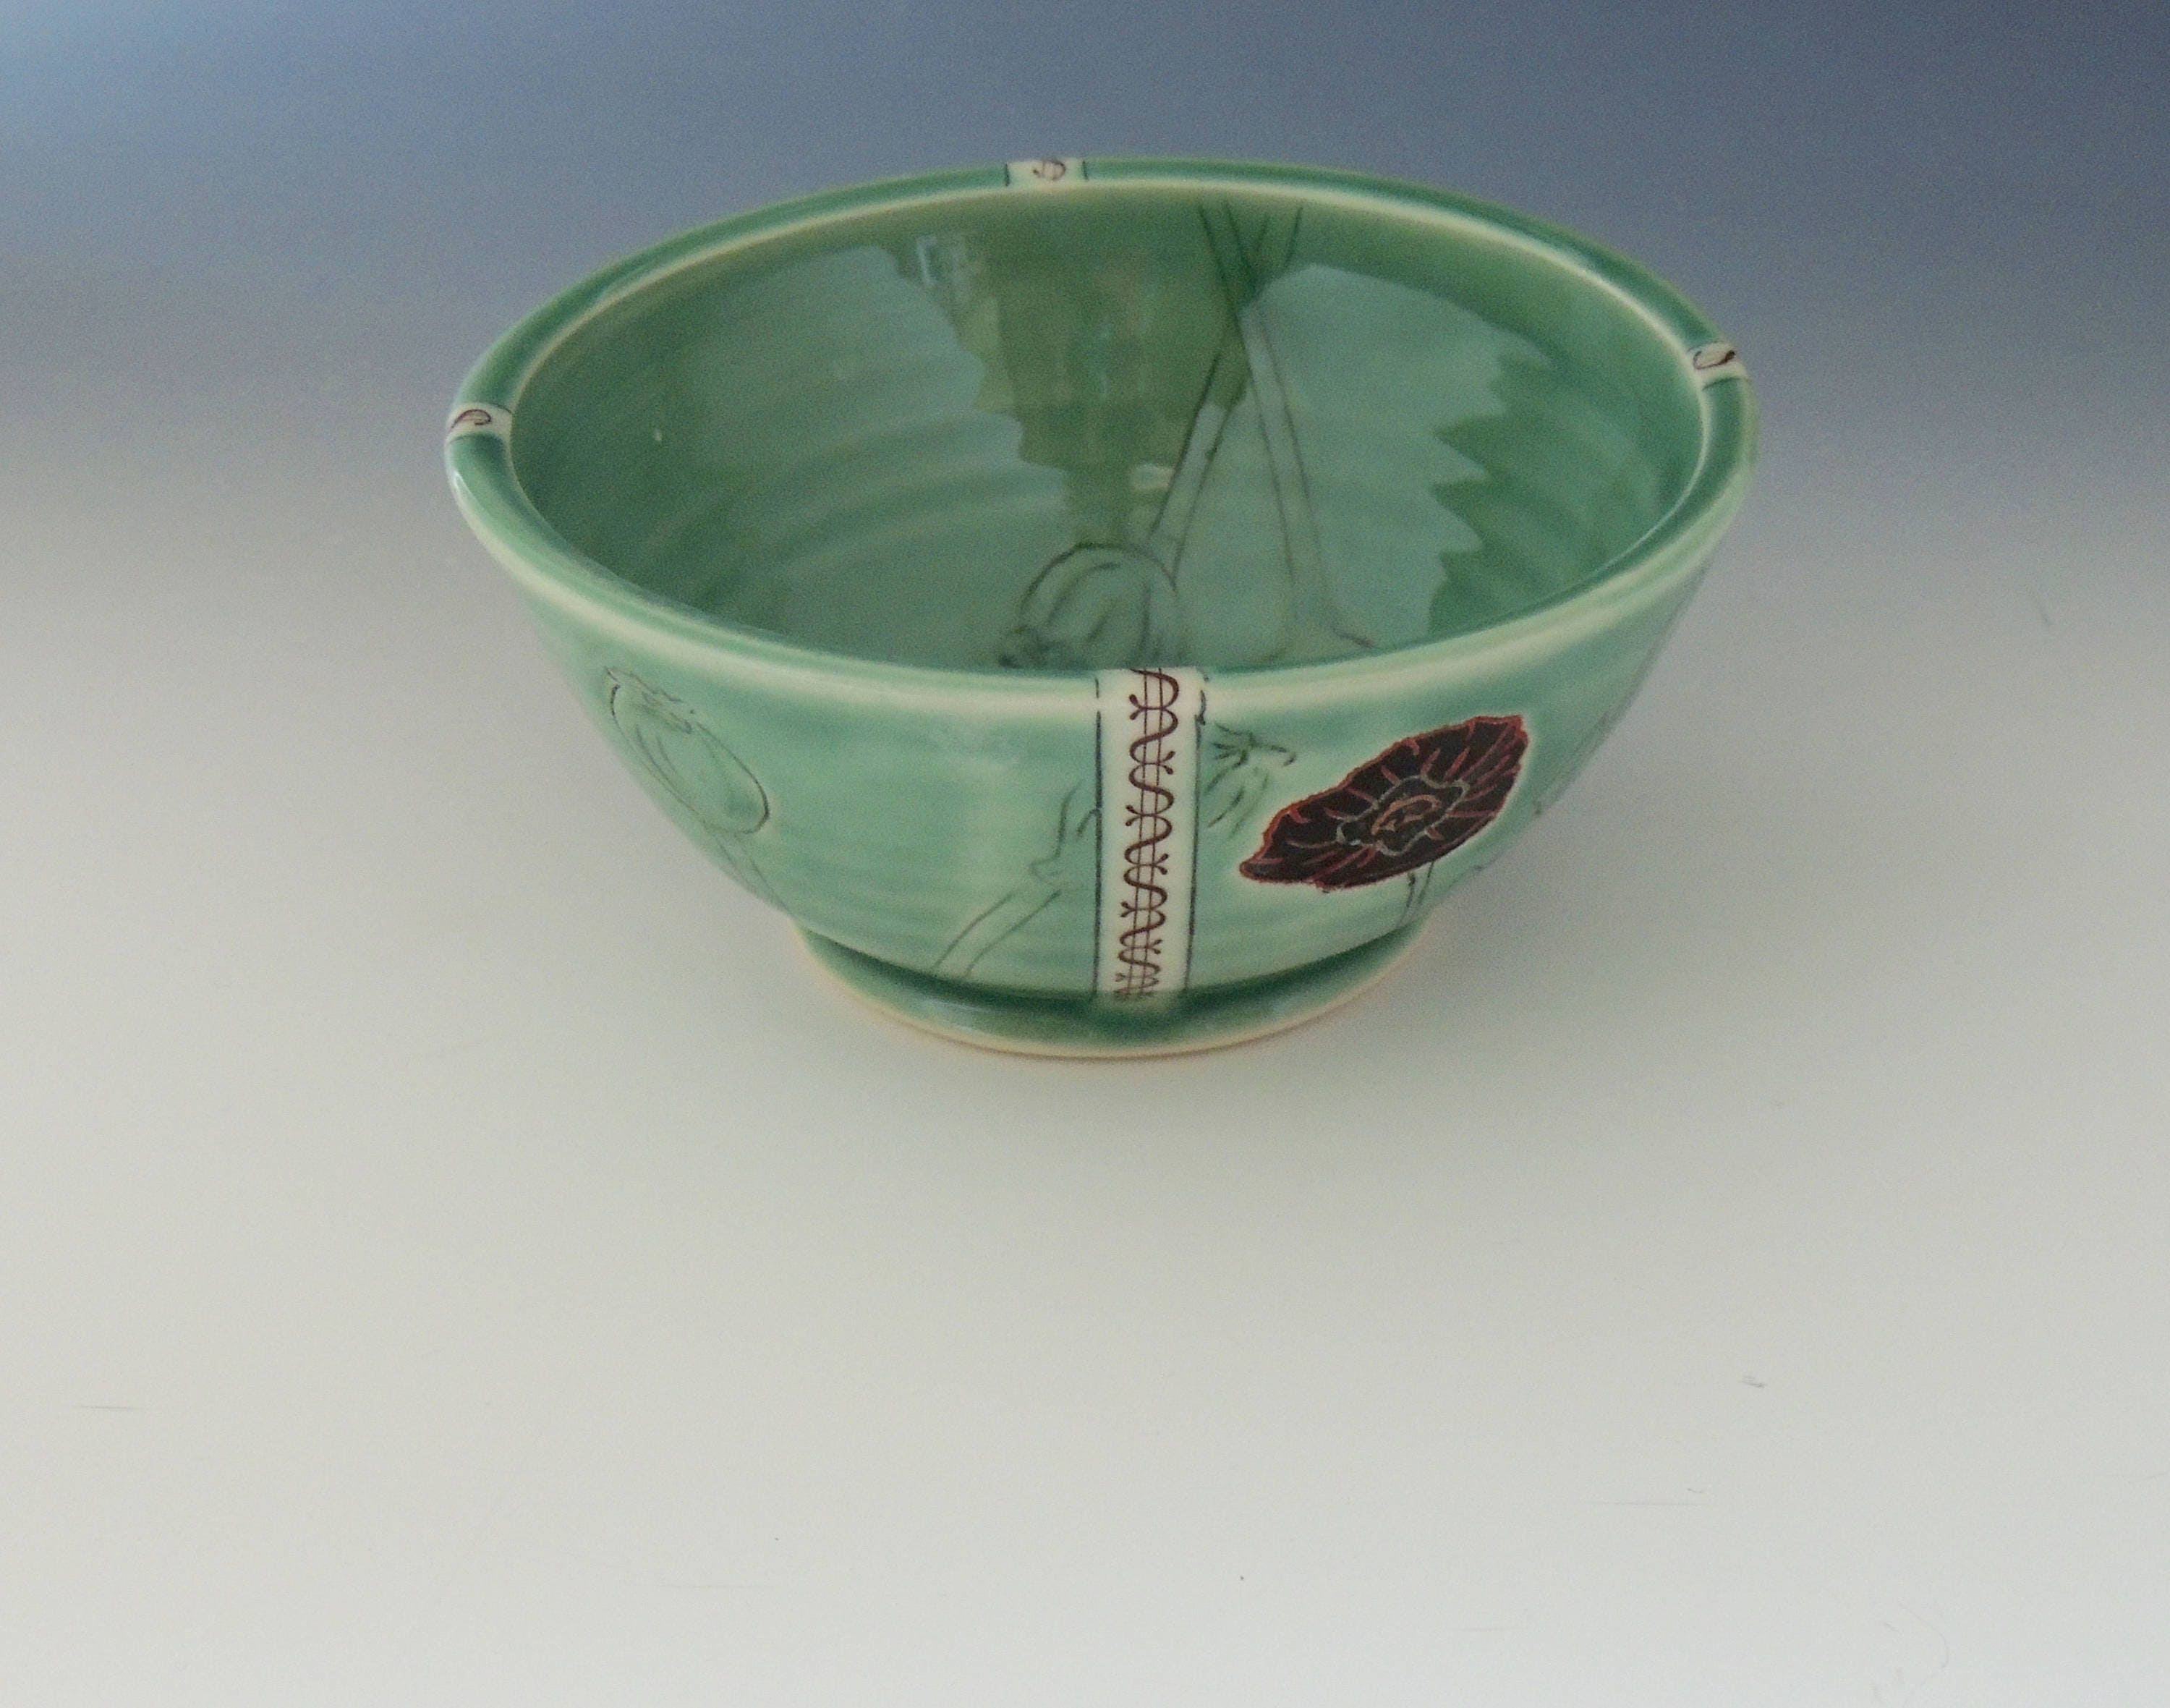 Ceramic Poppy Bowl Green Porcelain Clay Dish With Opium